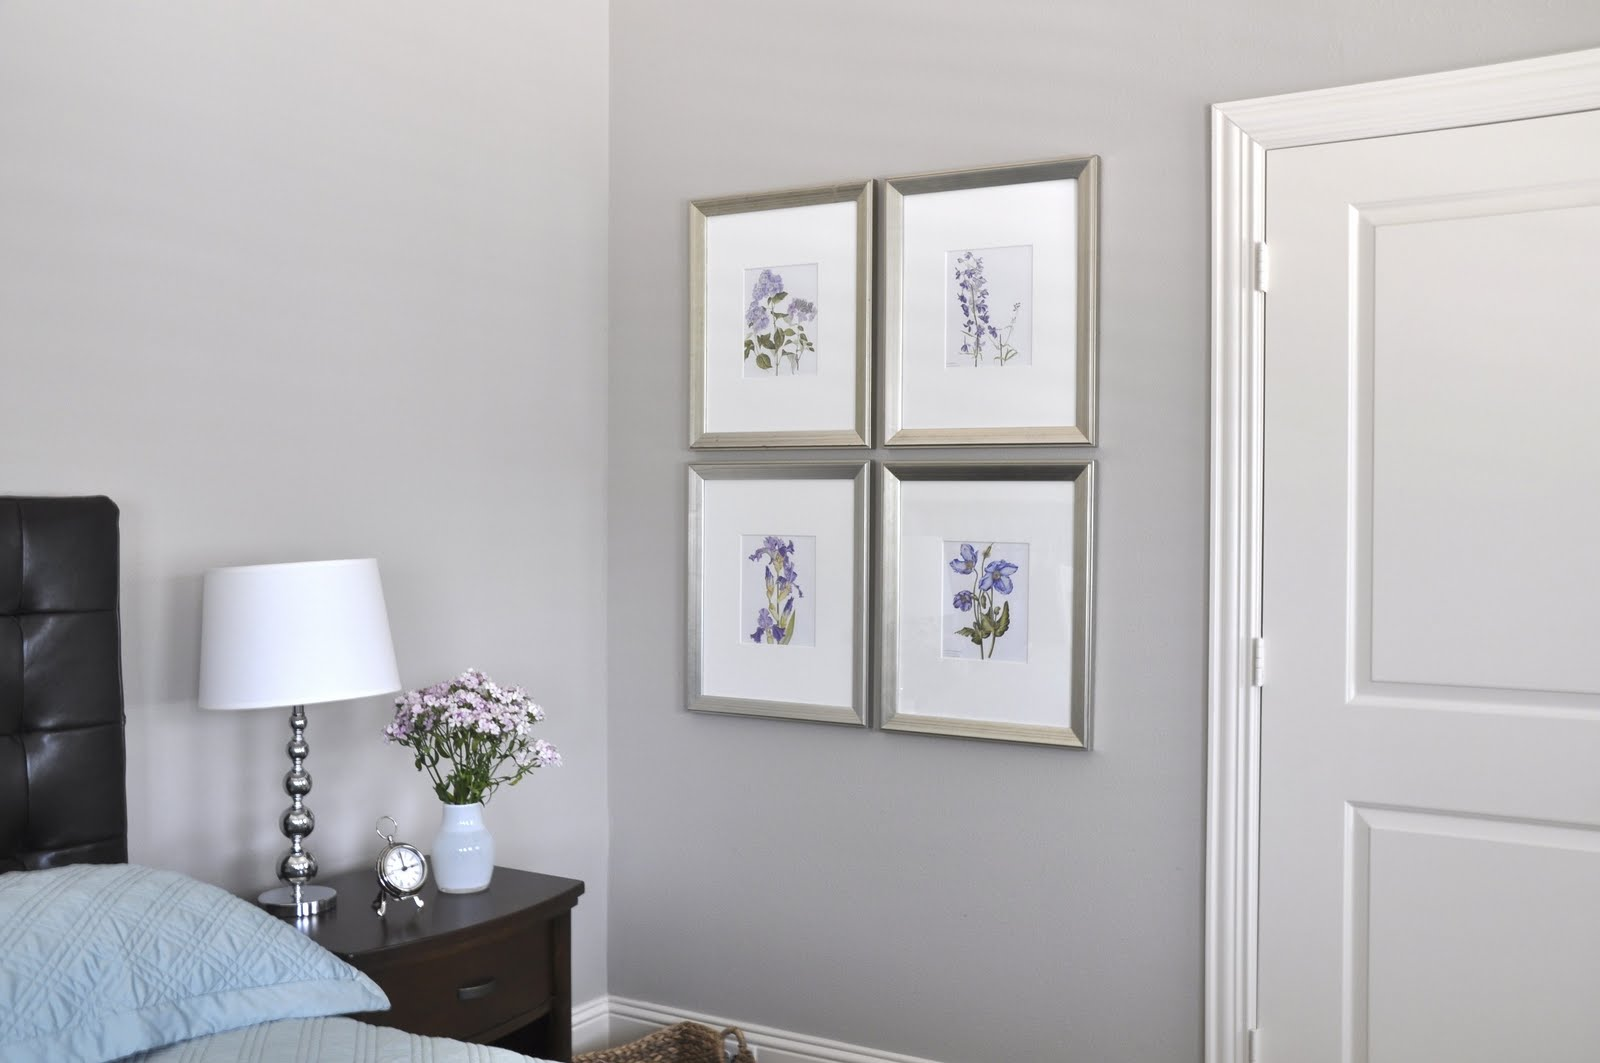 Inexpensive Bathroom Wall Decor : Inexpensive botanical wall art honey we re home